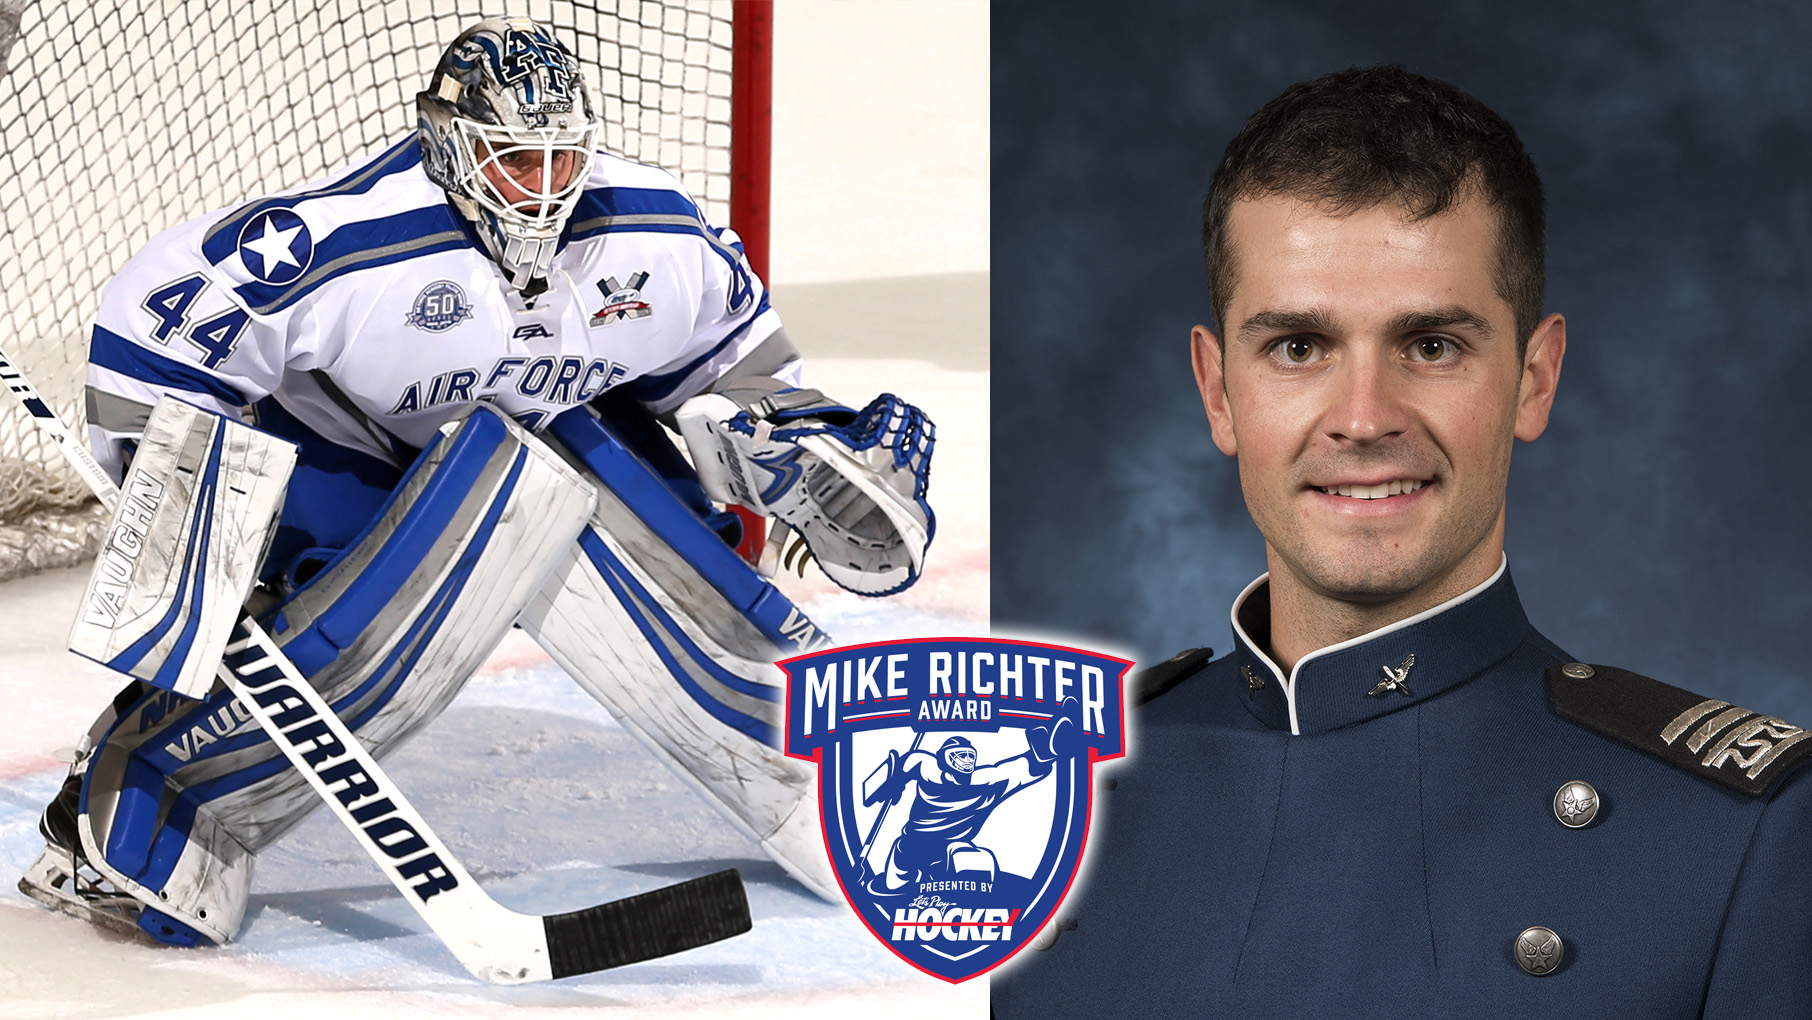 Christopoulos Named To Richter Award Watch List Air Force Academy